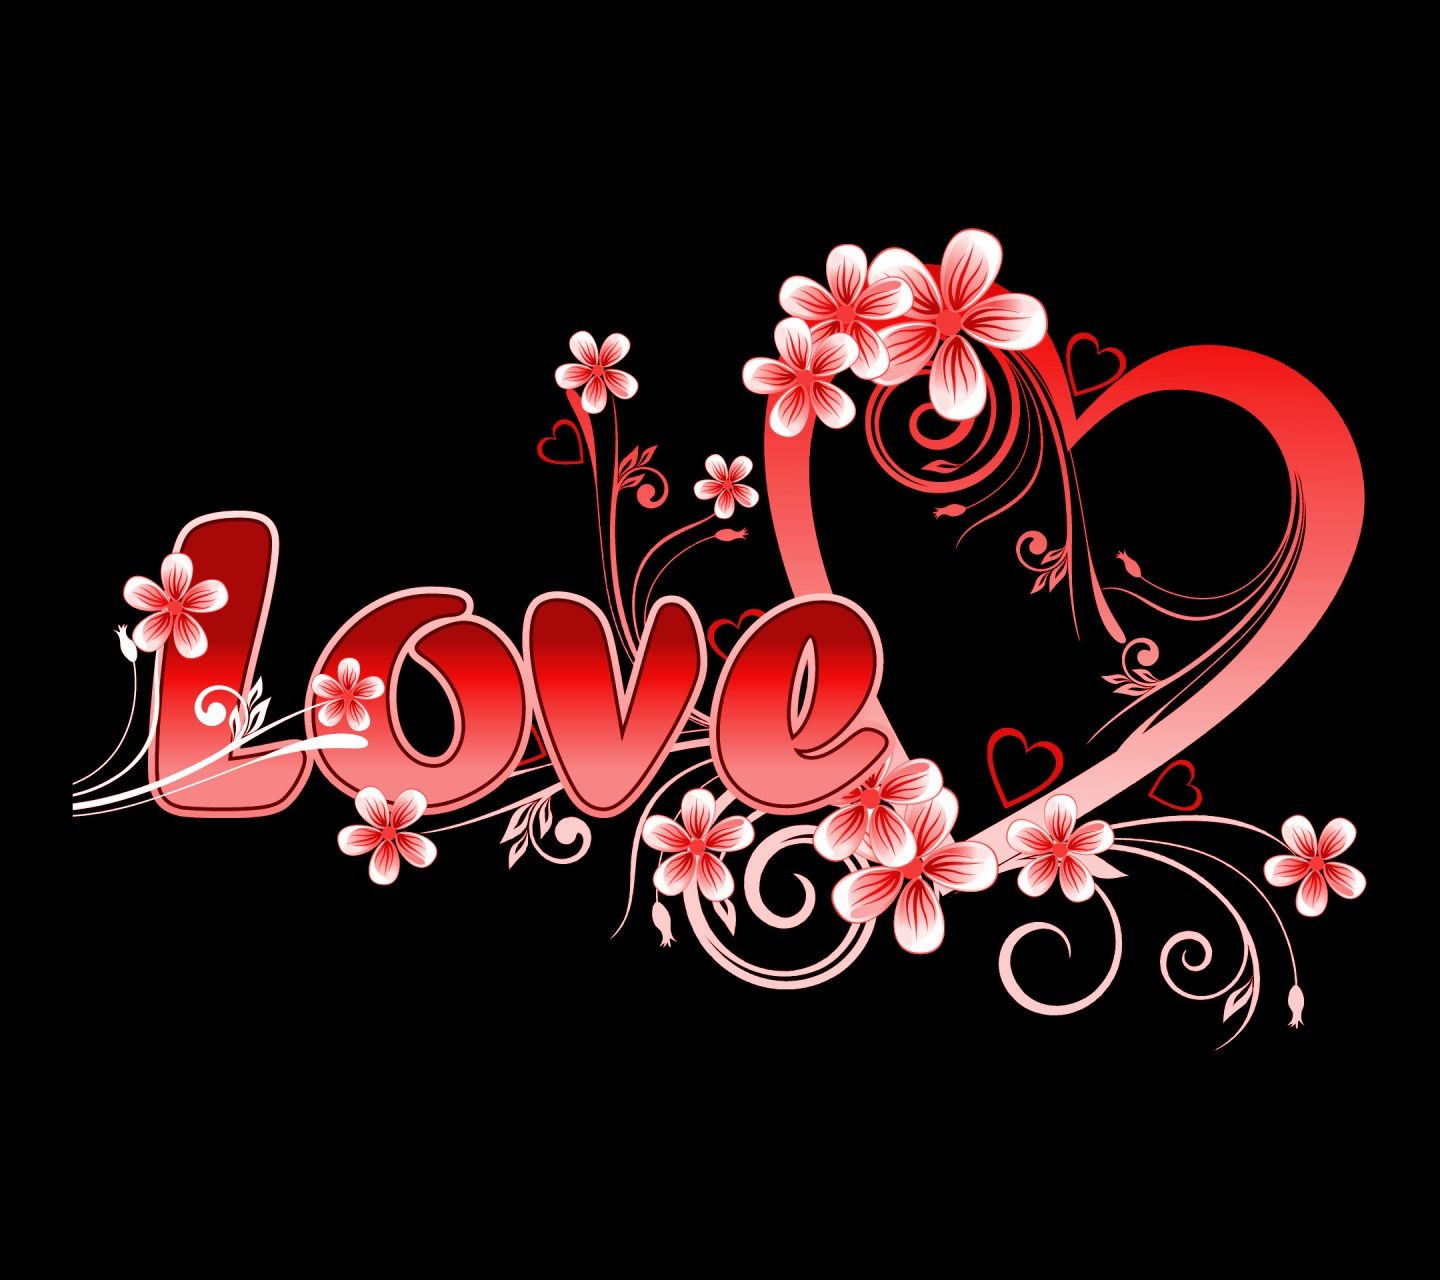 Love Wallpaper For Mobile Zedge : 1440x1280 mobile phone wallpapers download - 76 ...